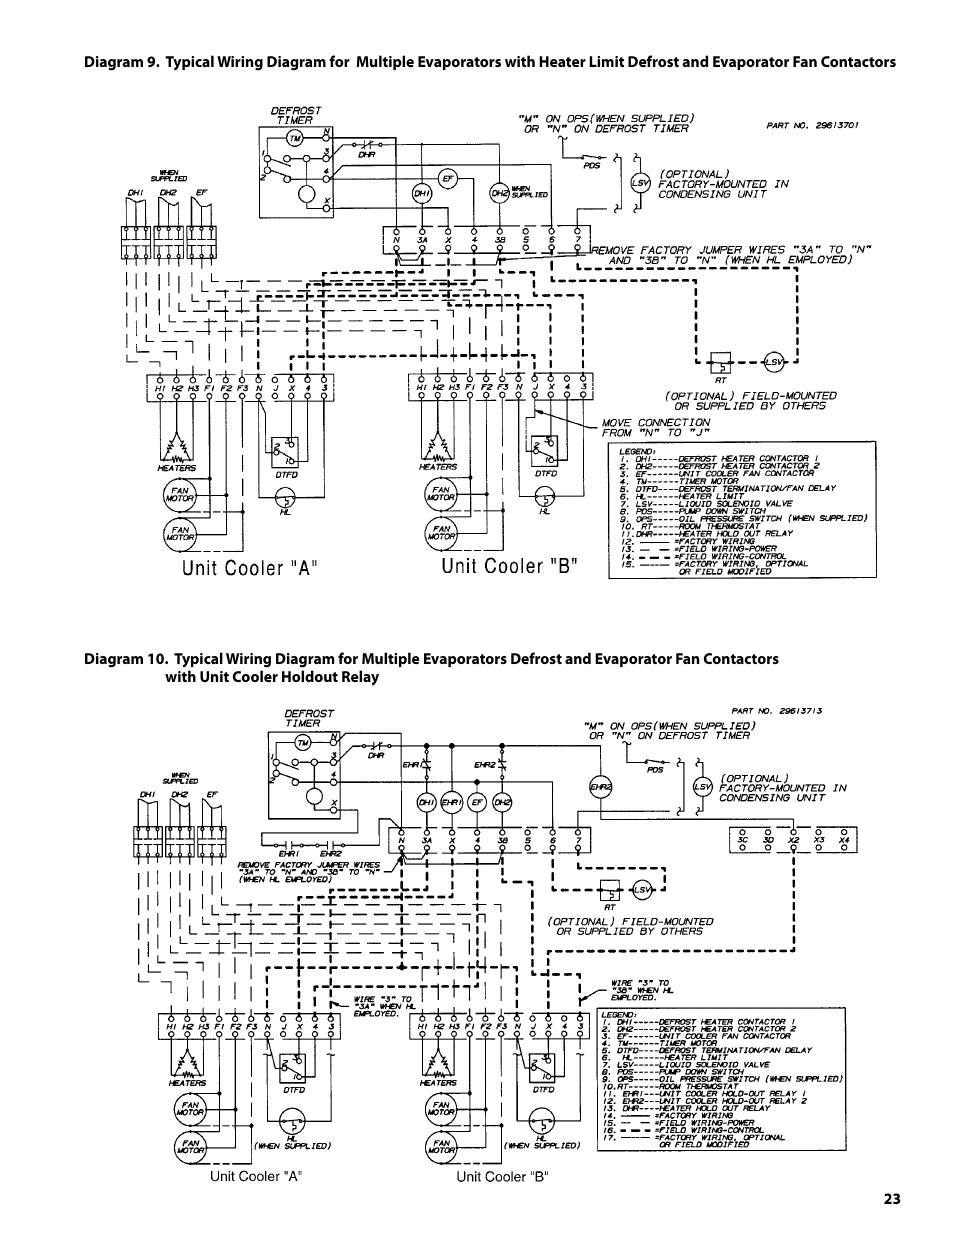 bohn walk in freezer wiring diagram bally walk in freezer wiring diagram #6